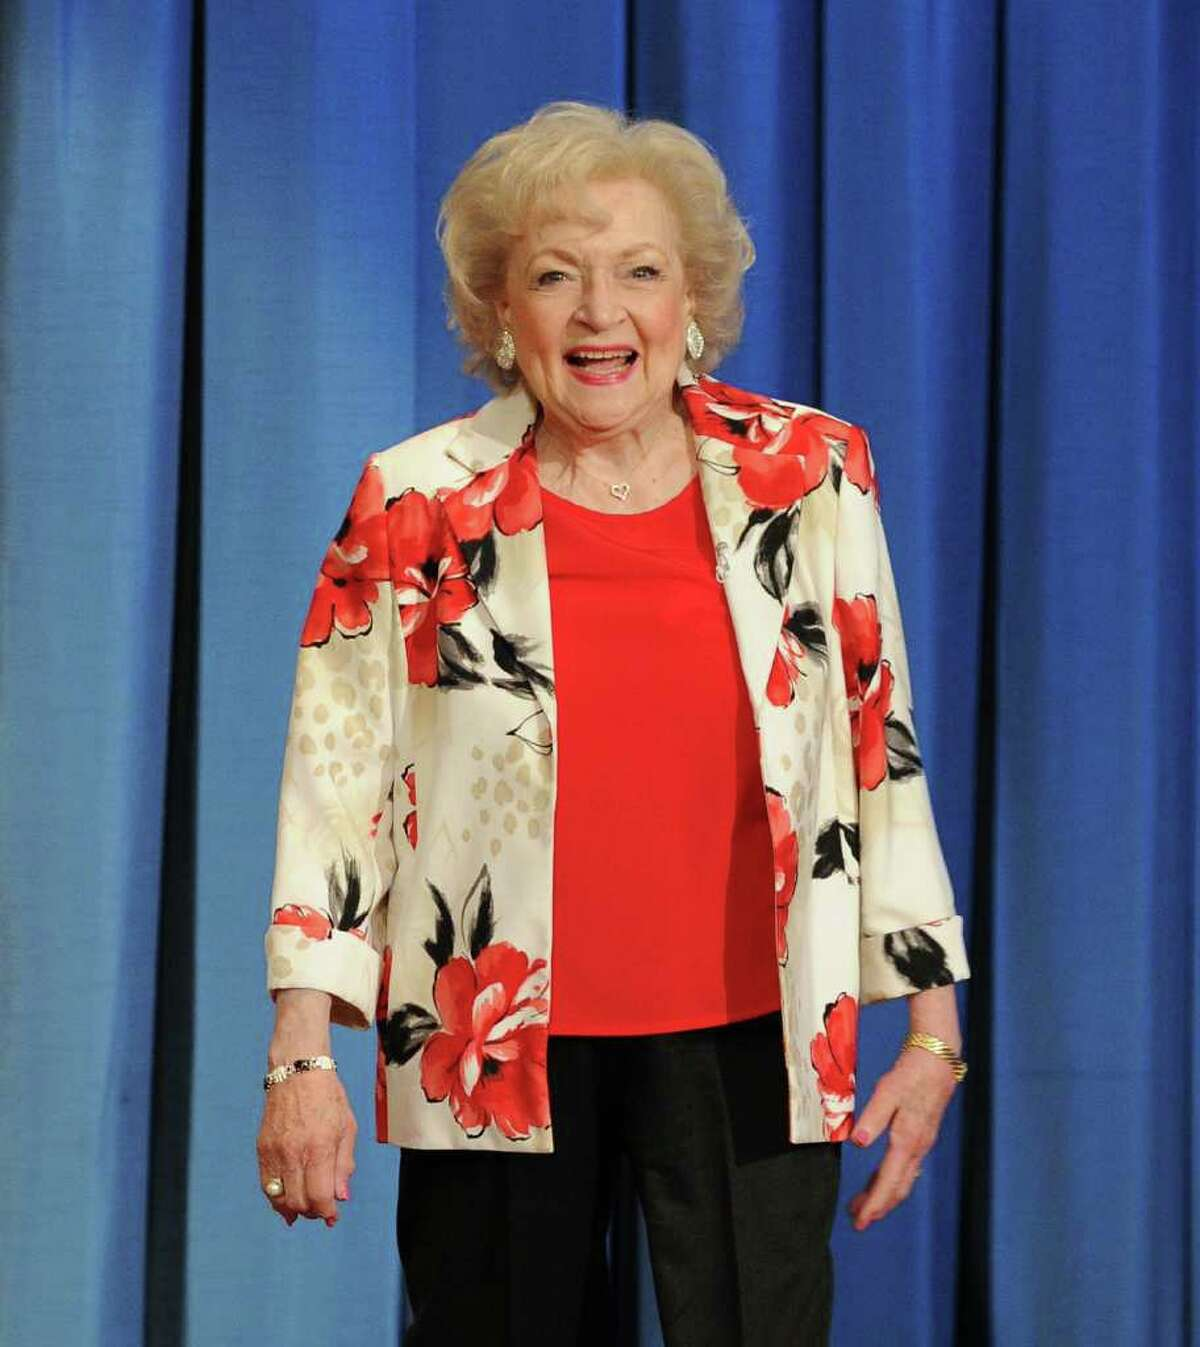 """NEW YORK, NY - JUNE 14: Actress Betty White visits """"Late Night With Jimmy Fallon"""" at Rockefeller Center on June 14, 2011 in New York City. (Photo by Jason Kempin/Getty Images)"""